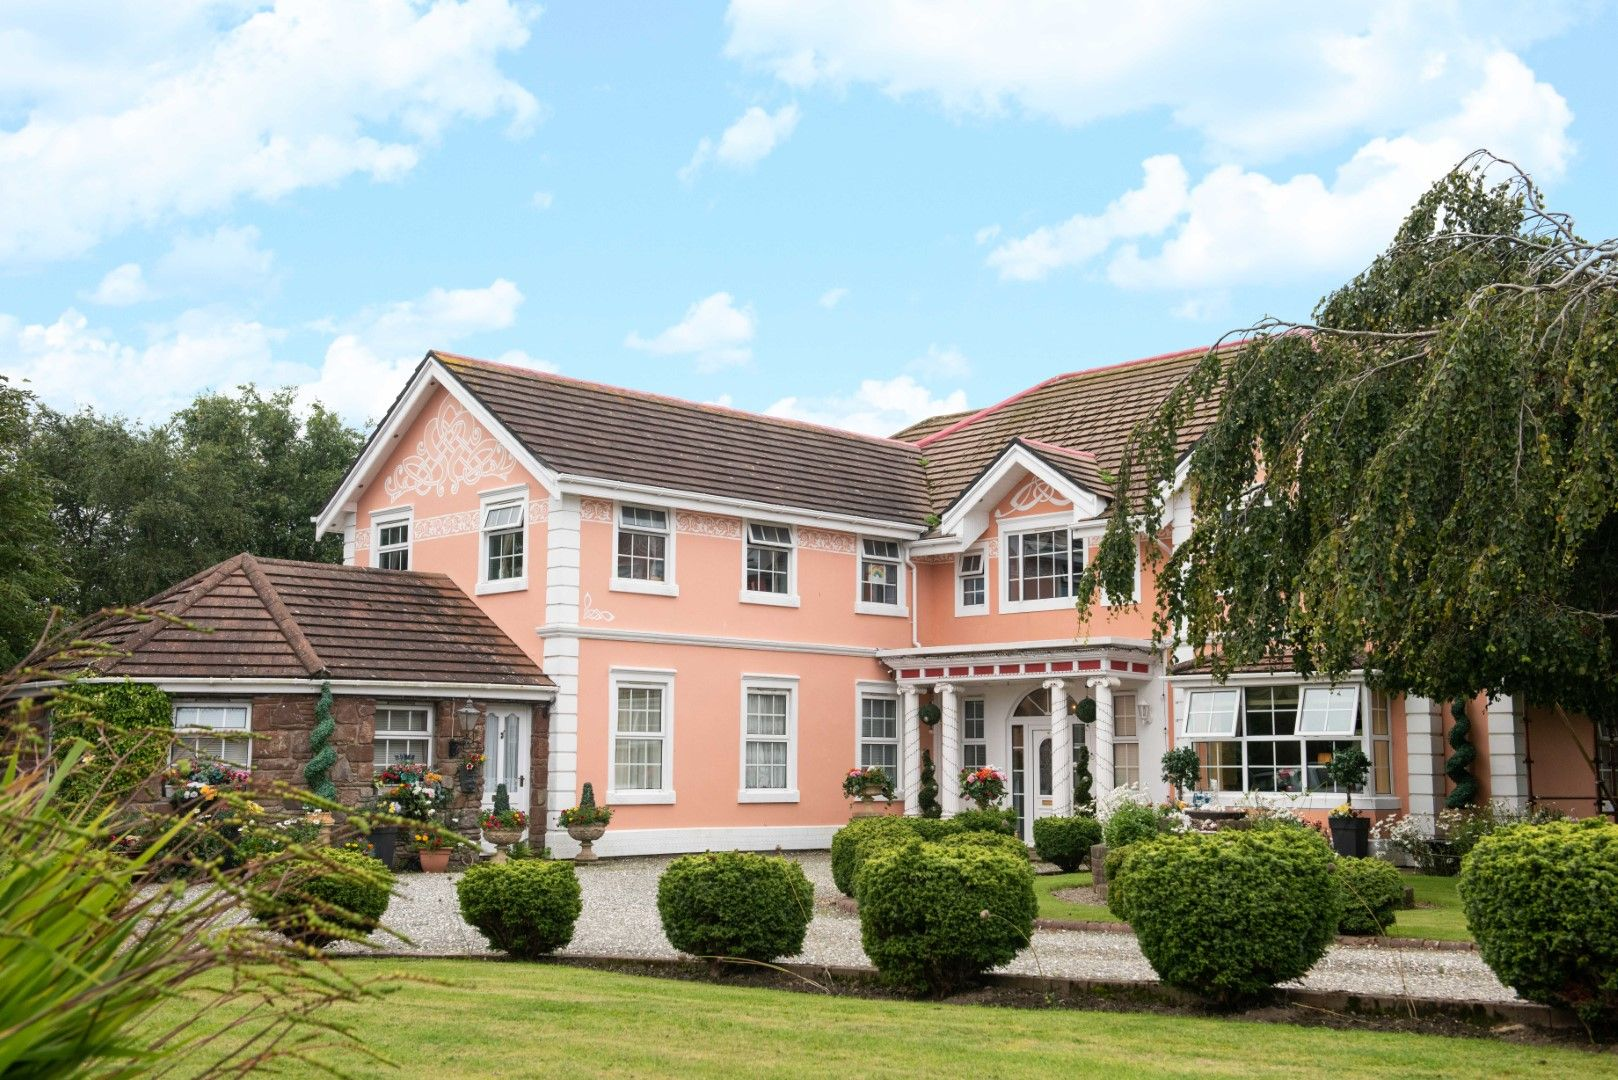 6 bedroom detached house For Sale in Peel - Photograph 1